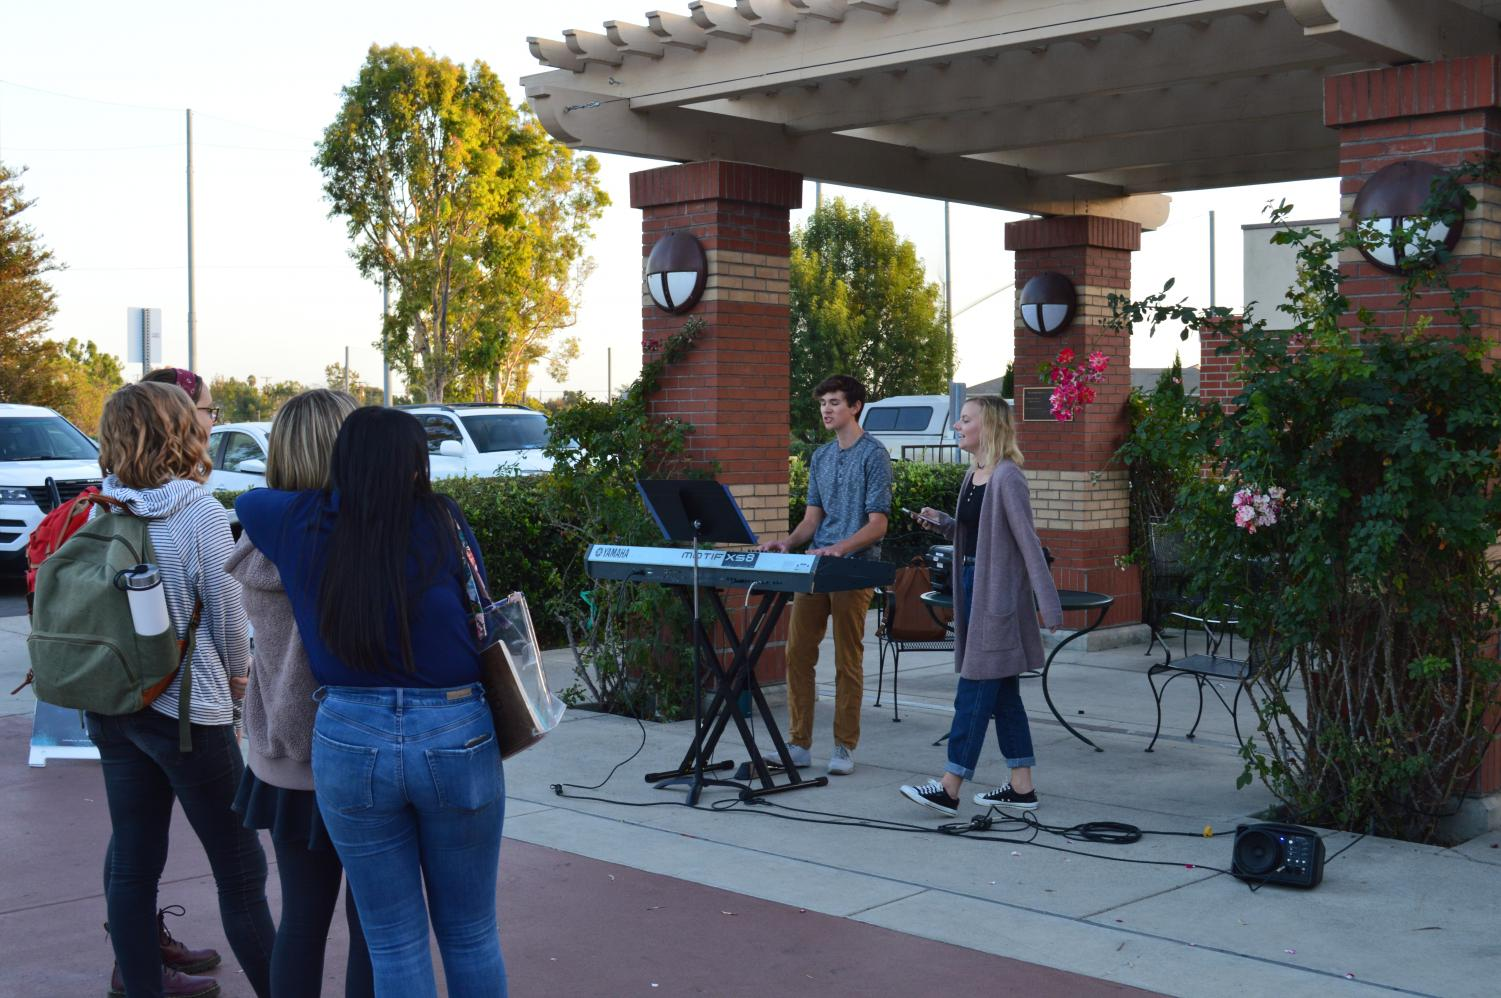 Freshmen commercial music majors Connor Martin and Hope Langston perform covers.